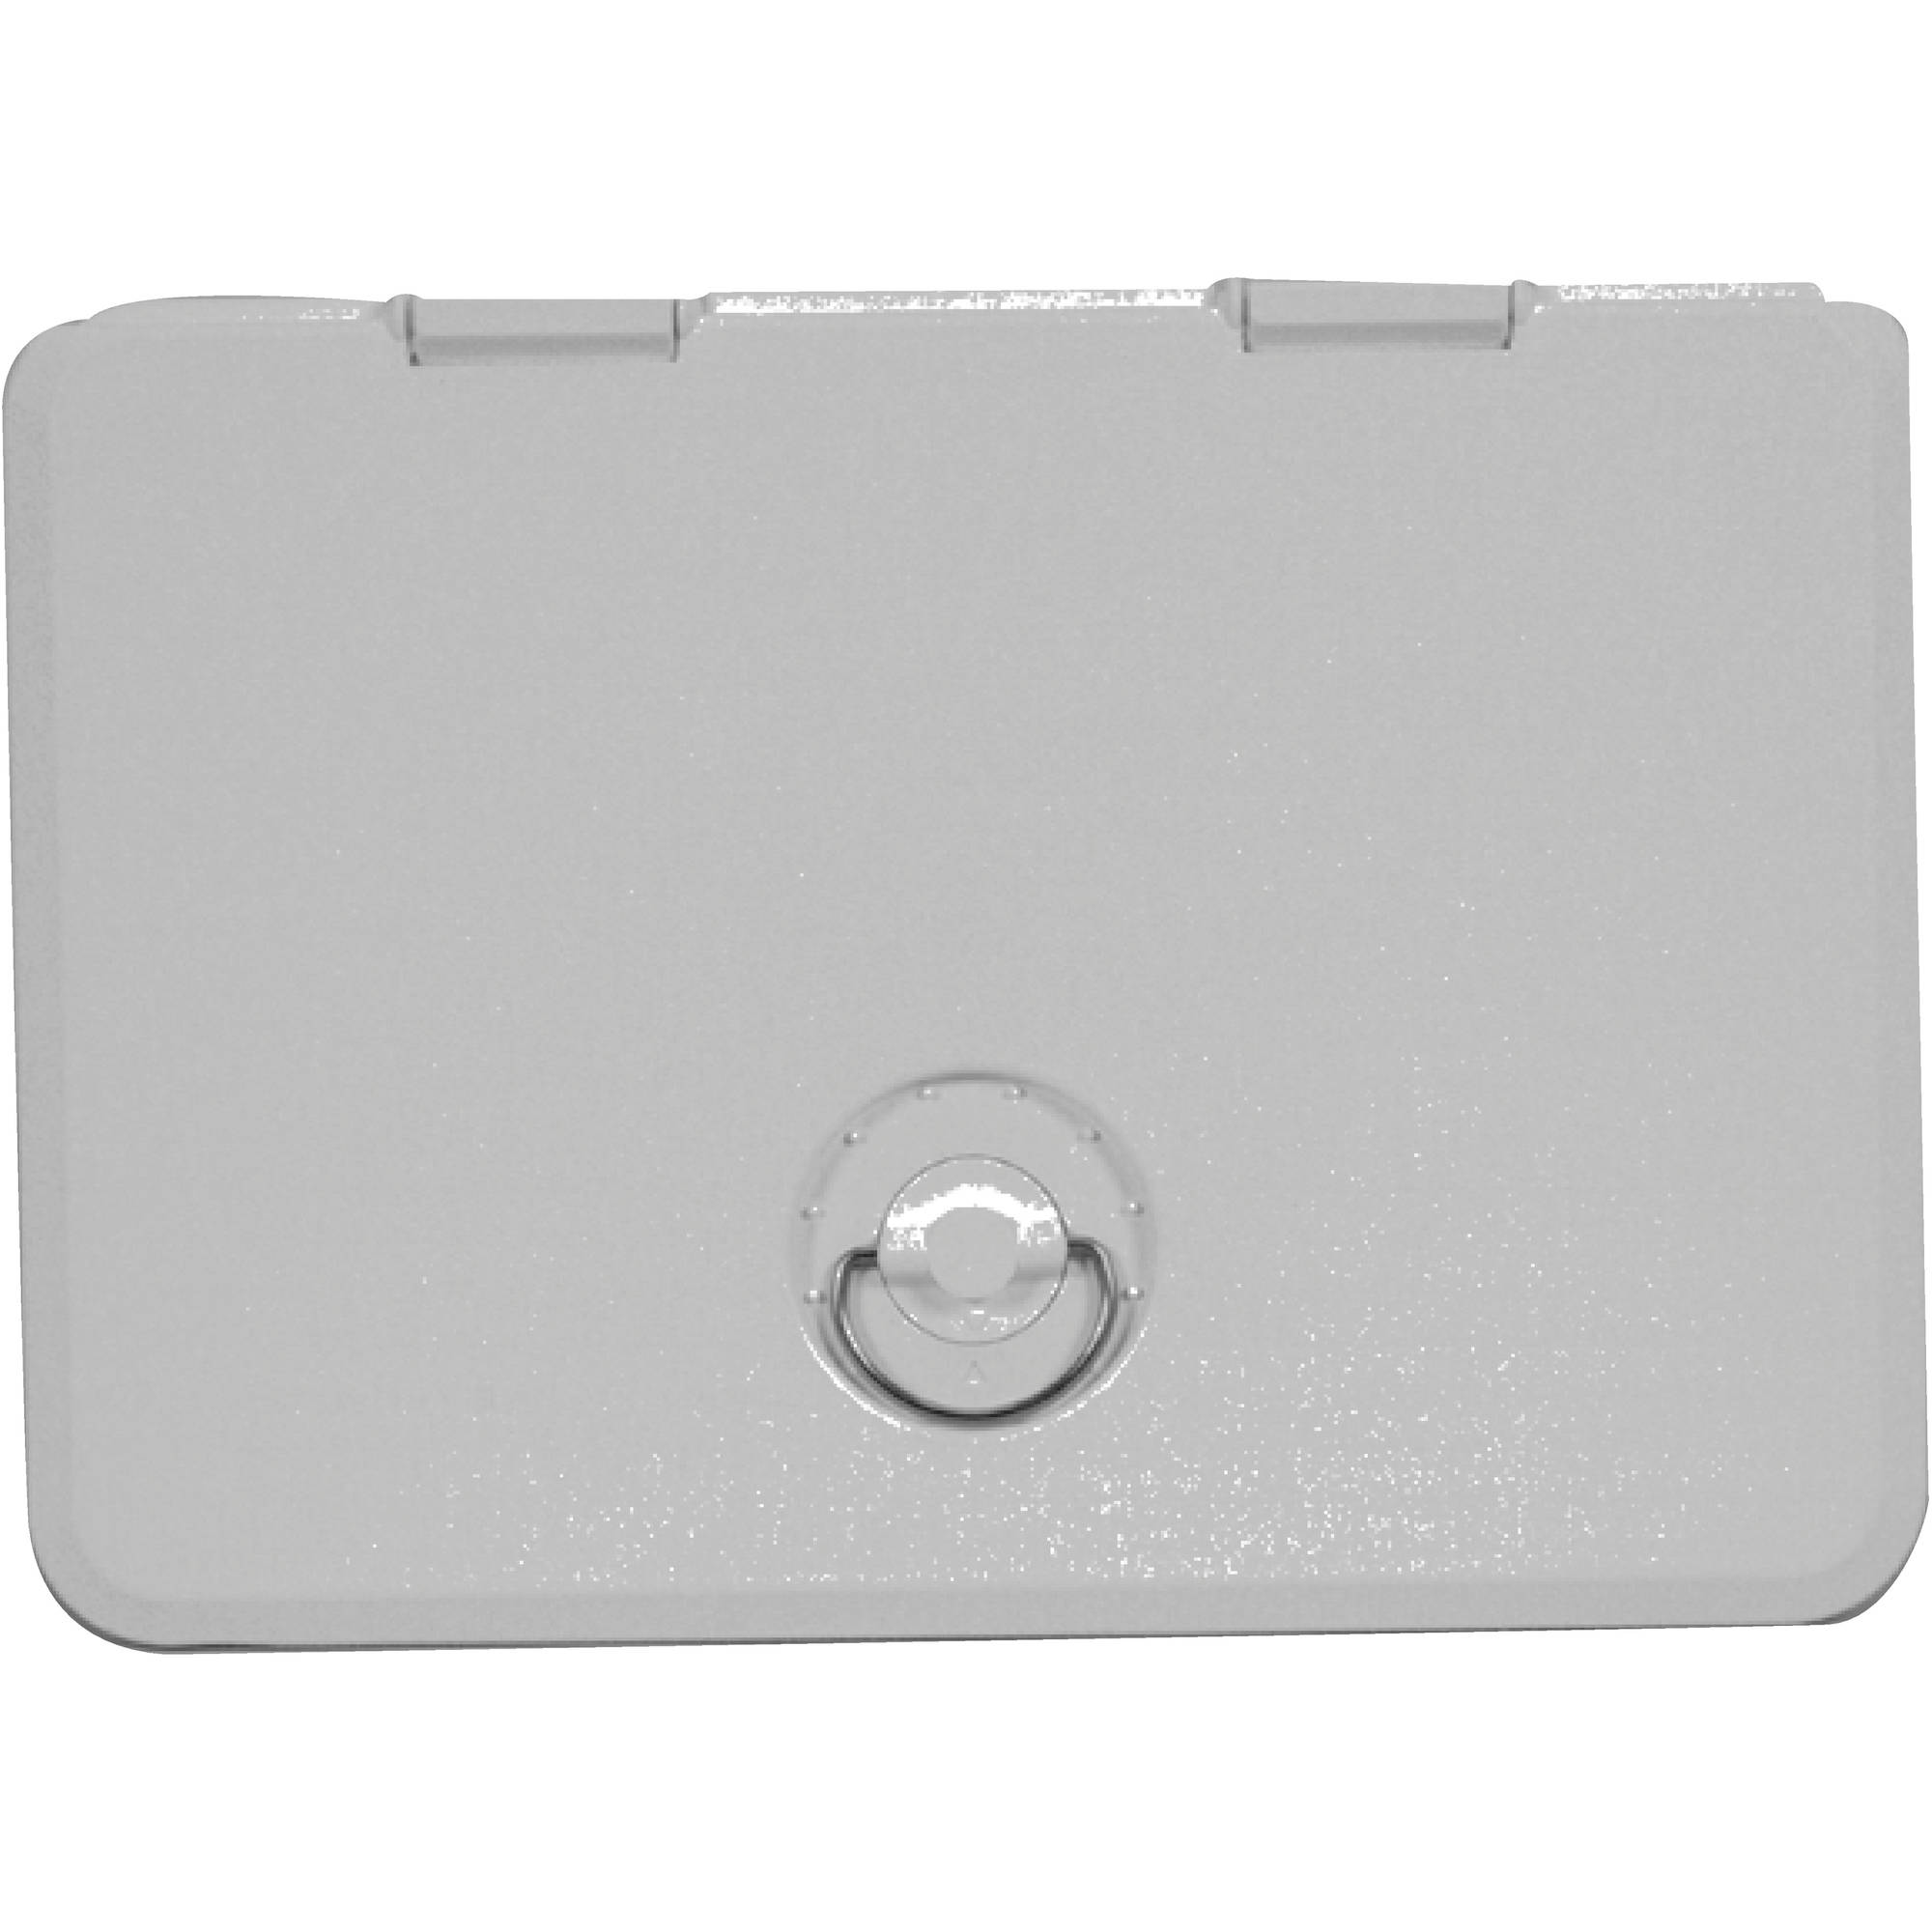 "T-H Marine Sure-Seal Non-Locking Access Hatch 12-3 4"" x 17-3 4\ by T-H Marine Supplies"